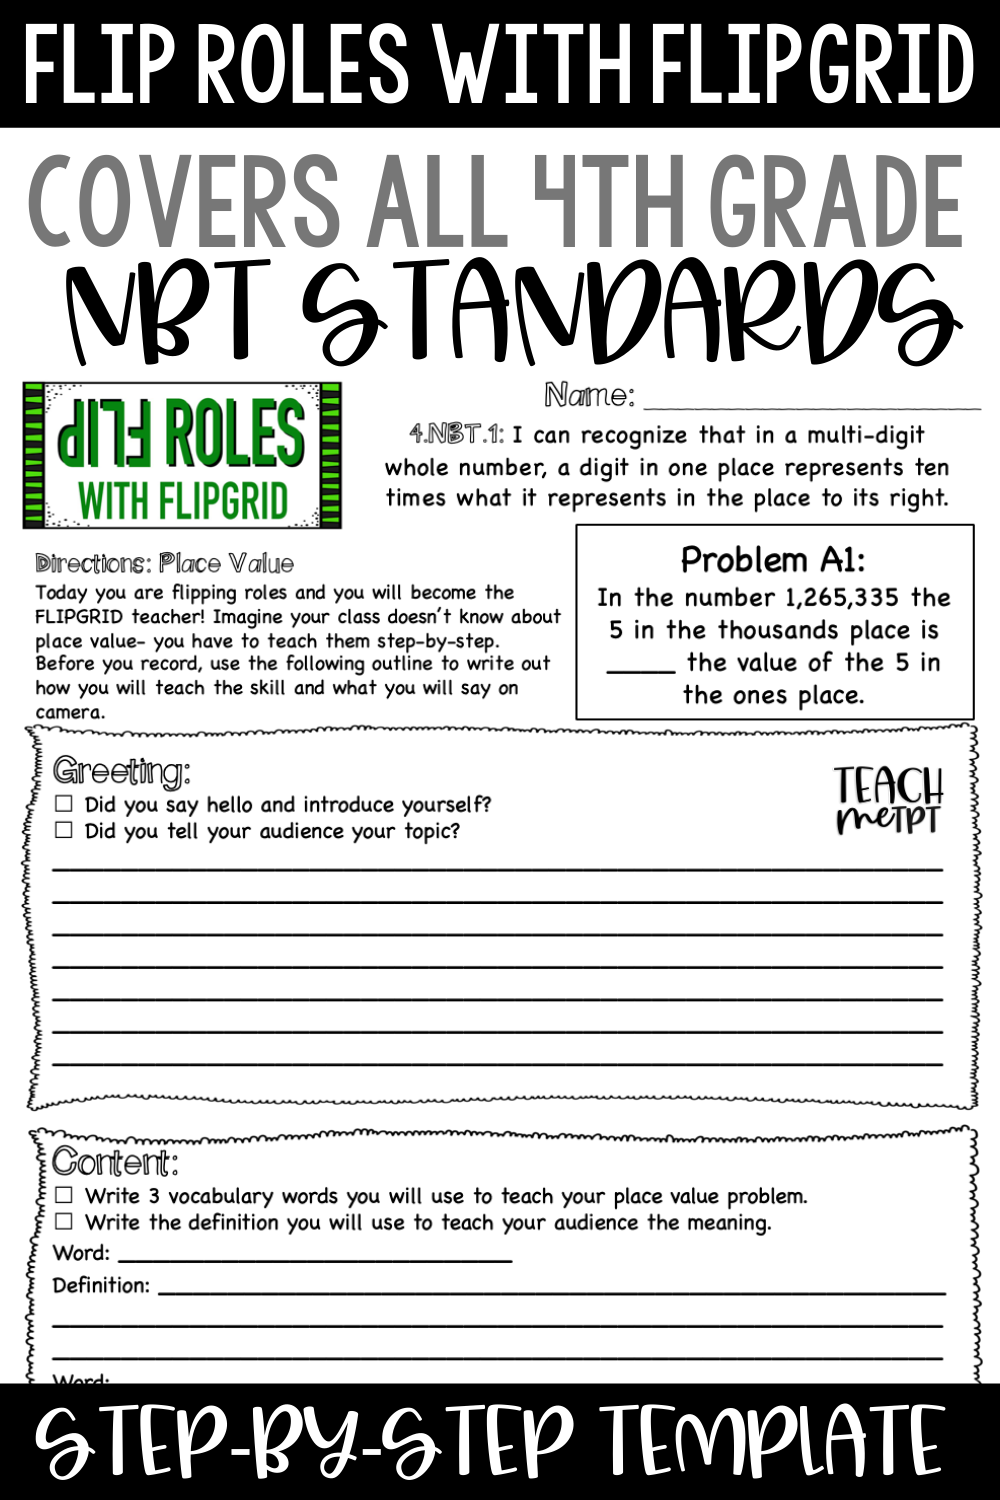 Flip Roles All 4th Grade NBT Bundle in 2020   Elementary math teacher [ 1500 x 1000 Pixel ]